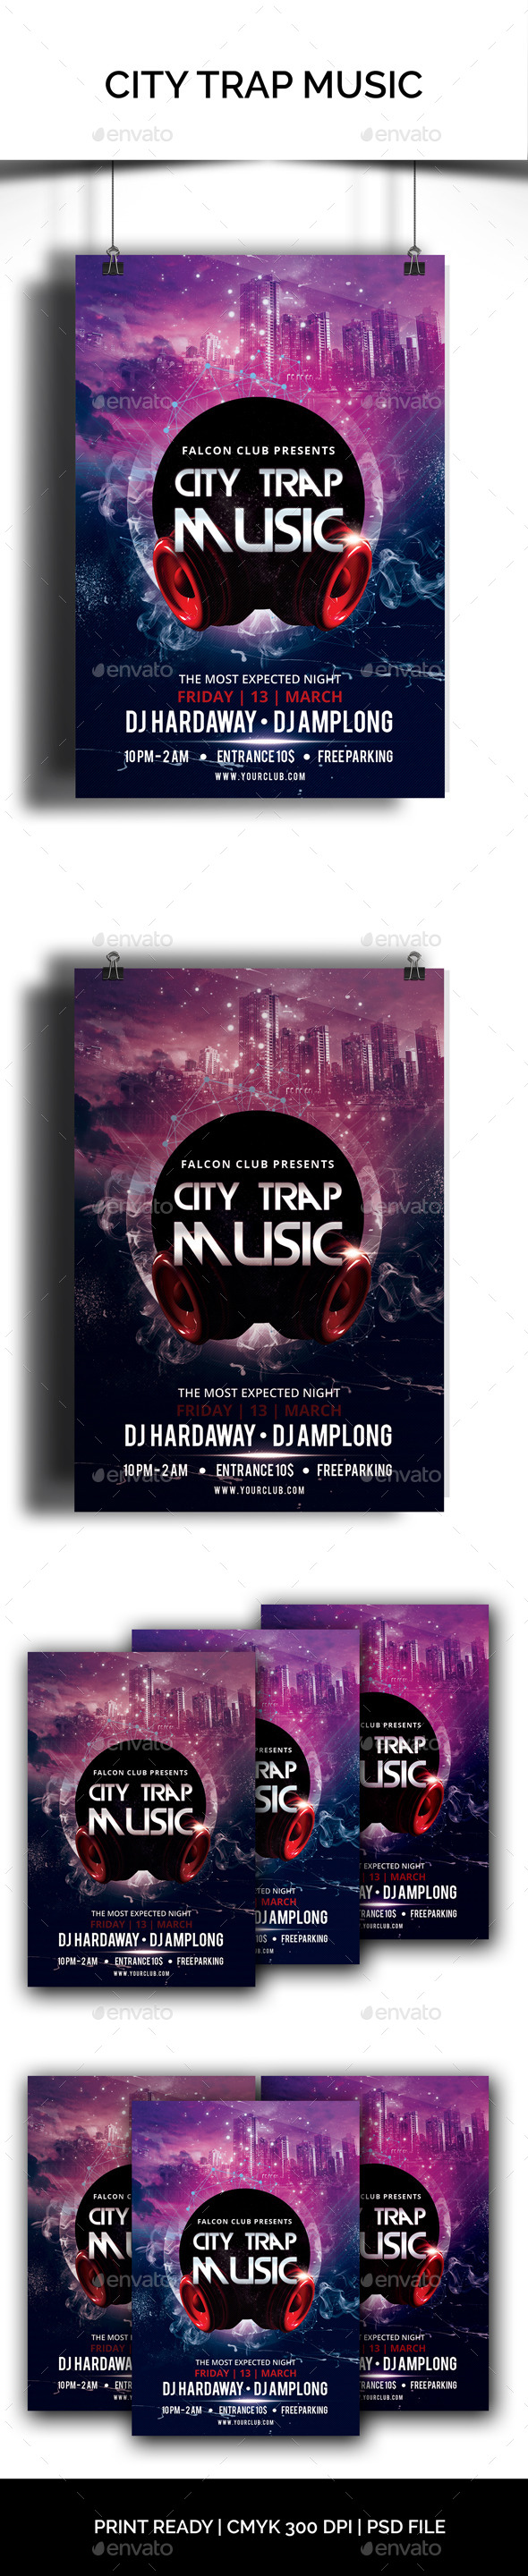 GraphicRiver City Trap Music 10655326